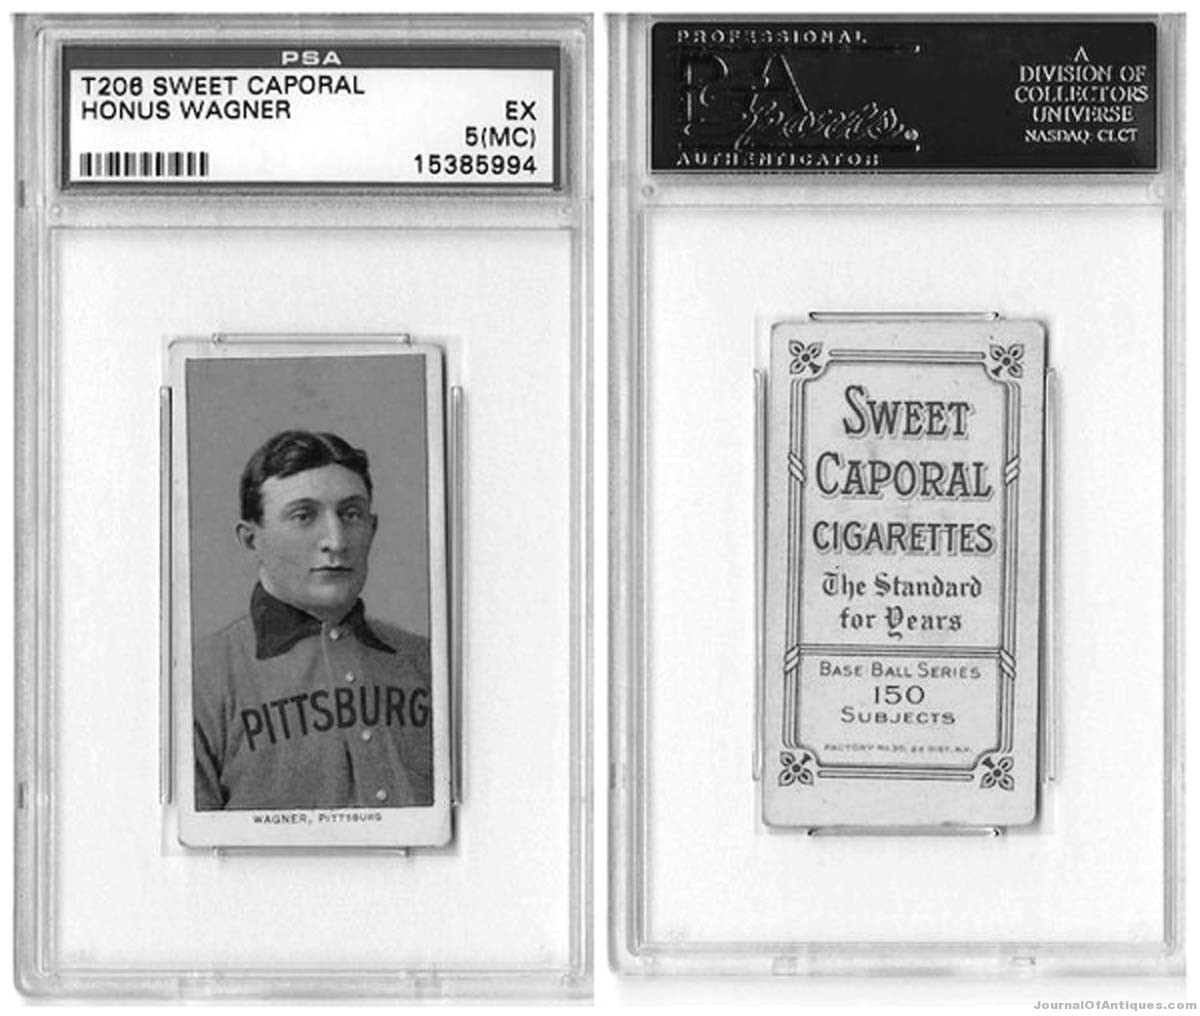 Ken's Korner: 1909 T206 Honus Wagner card sells for $2.1 million